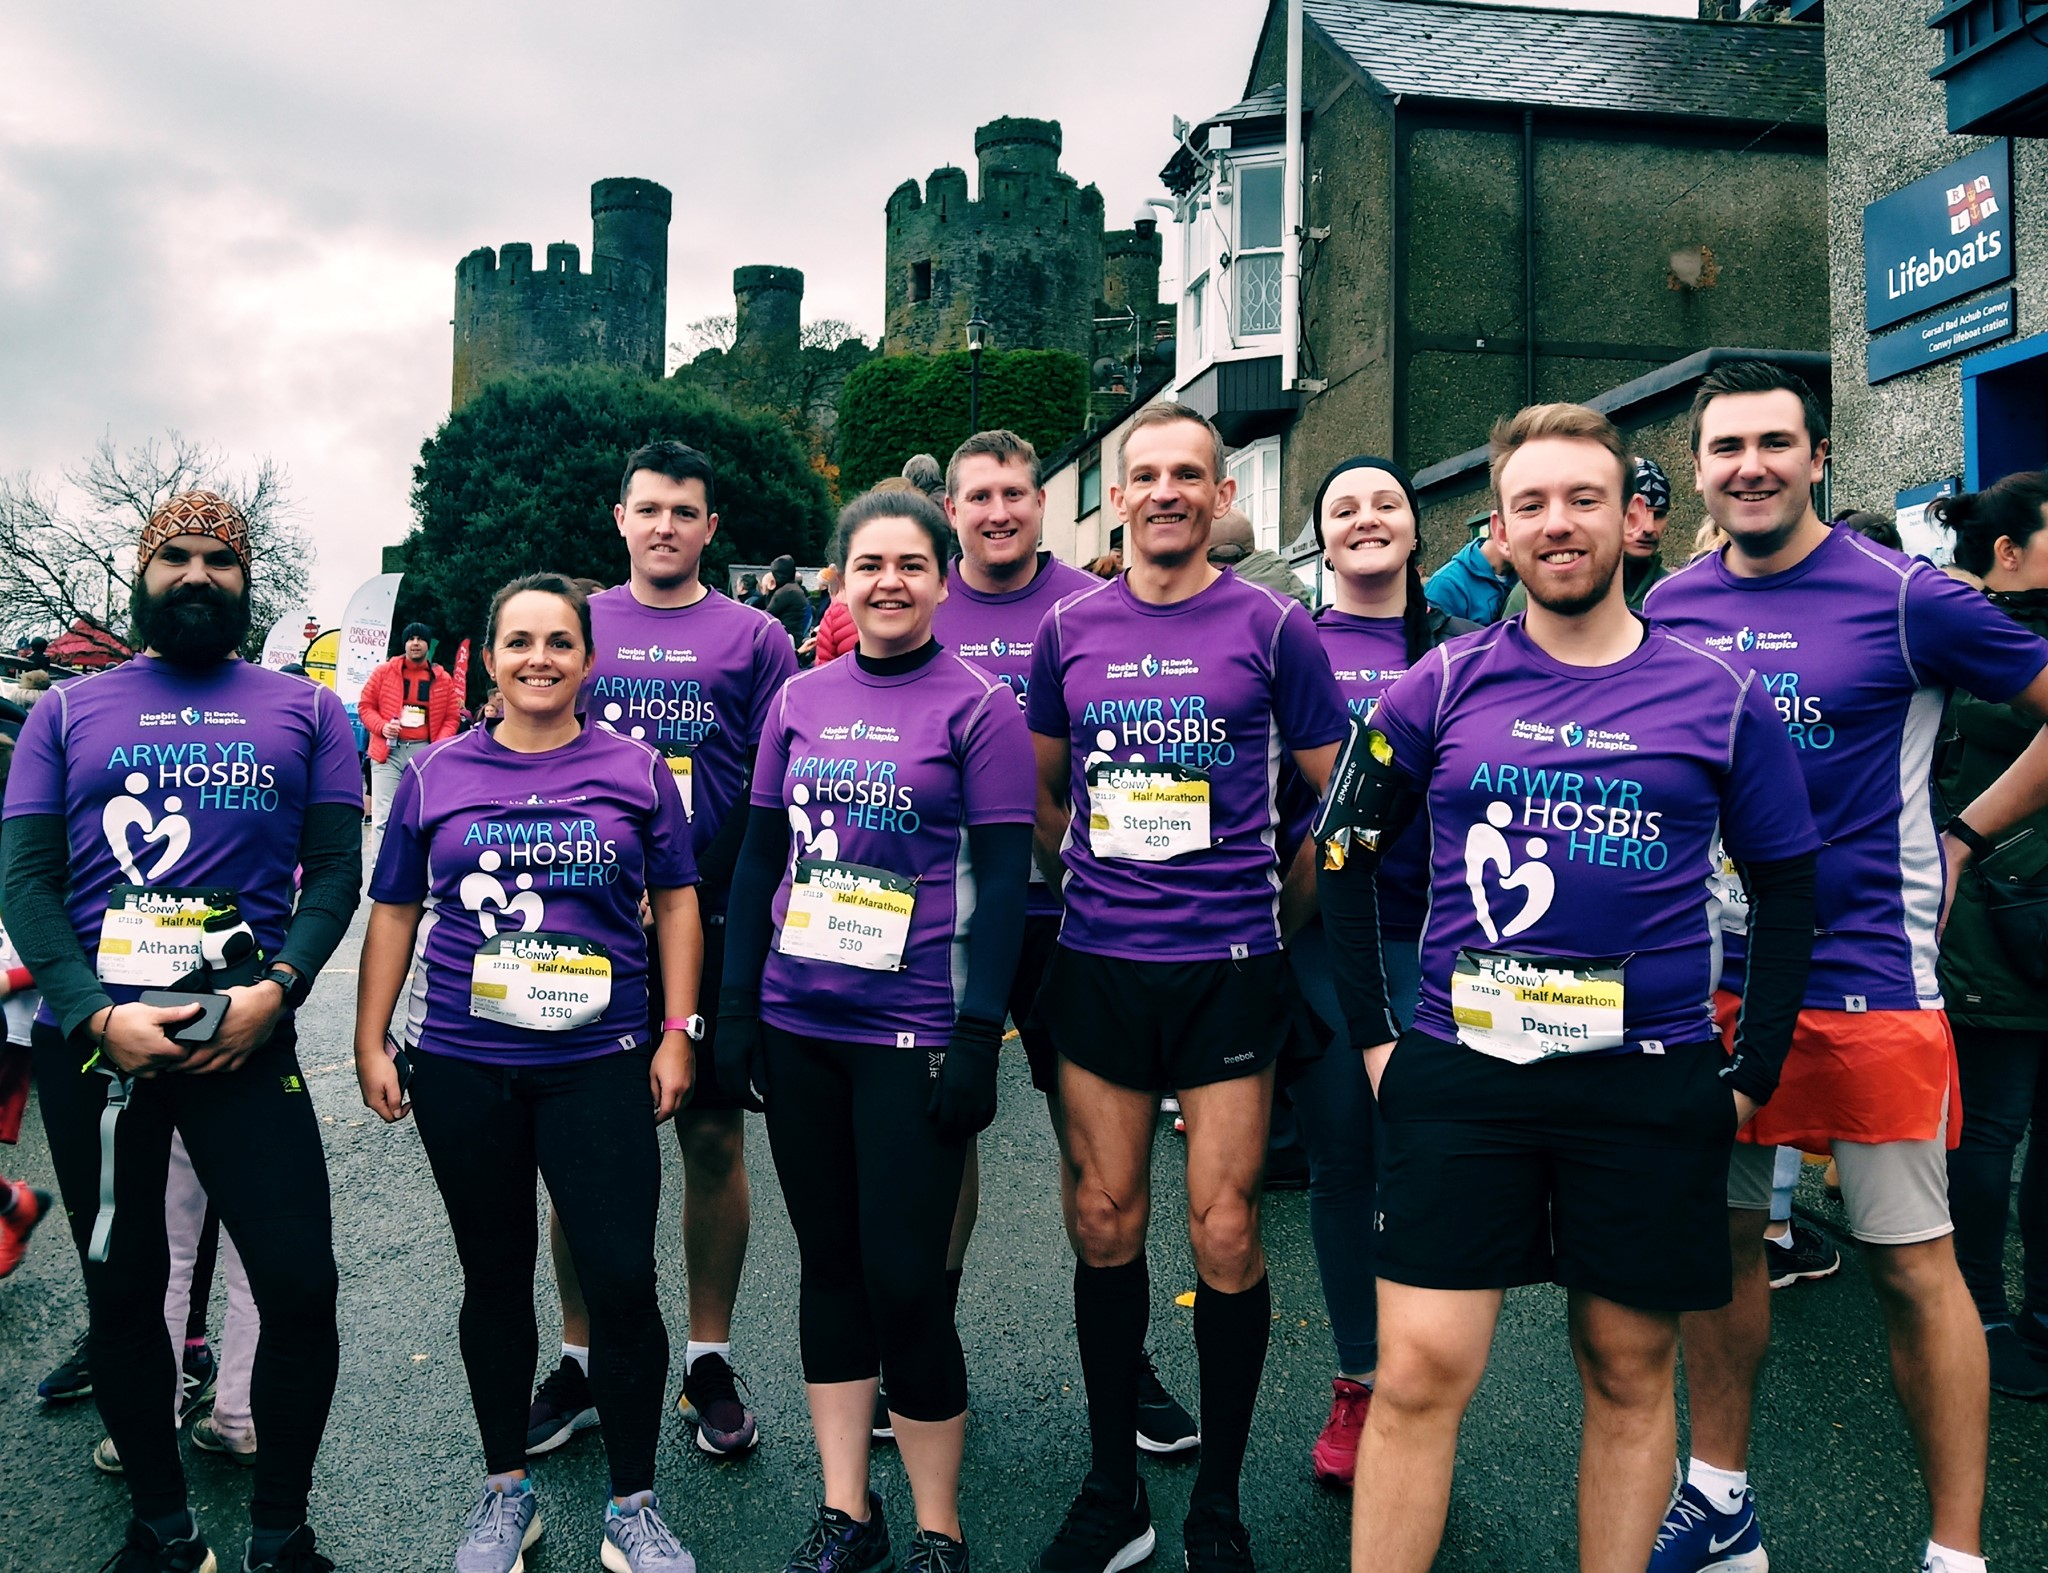 Want to take on a challenge? Run for St David's Hospice!